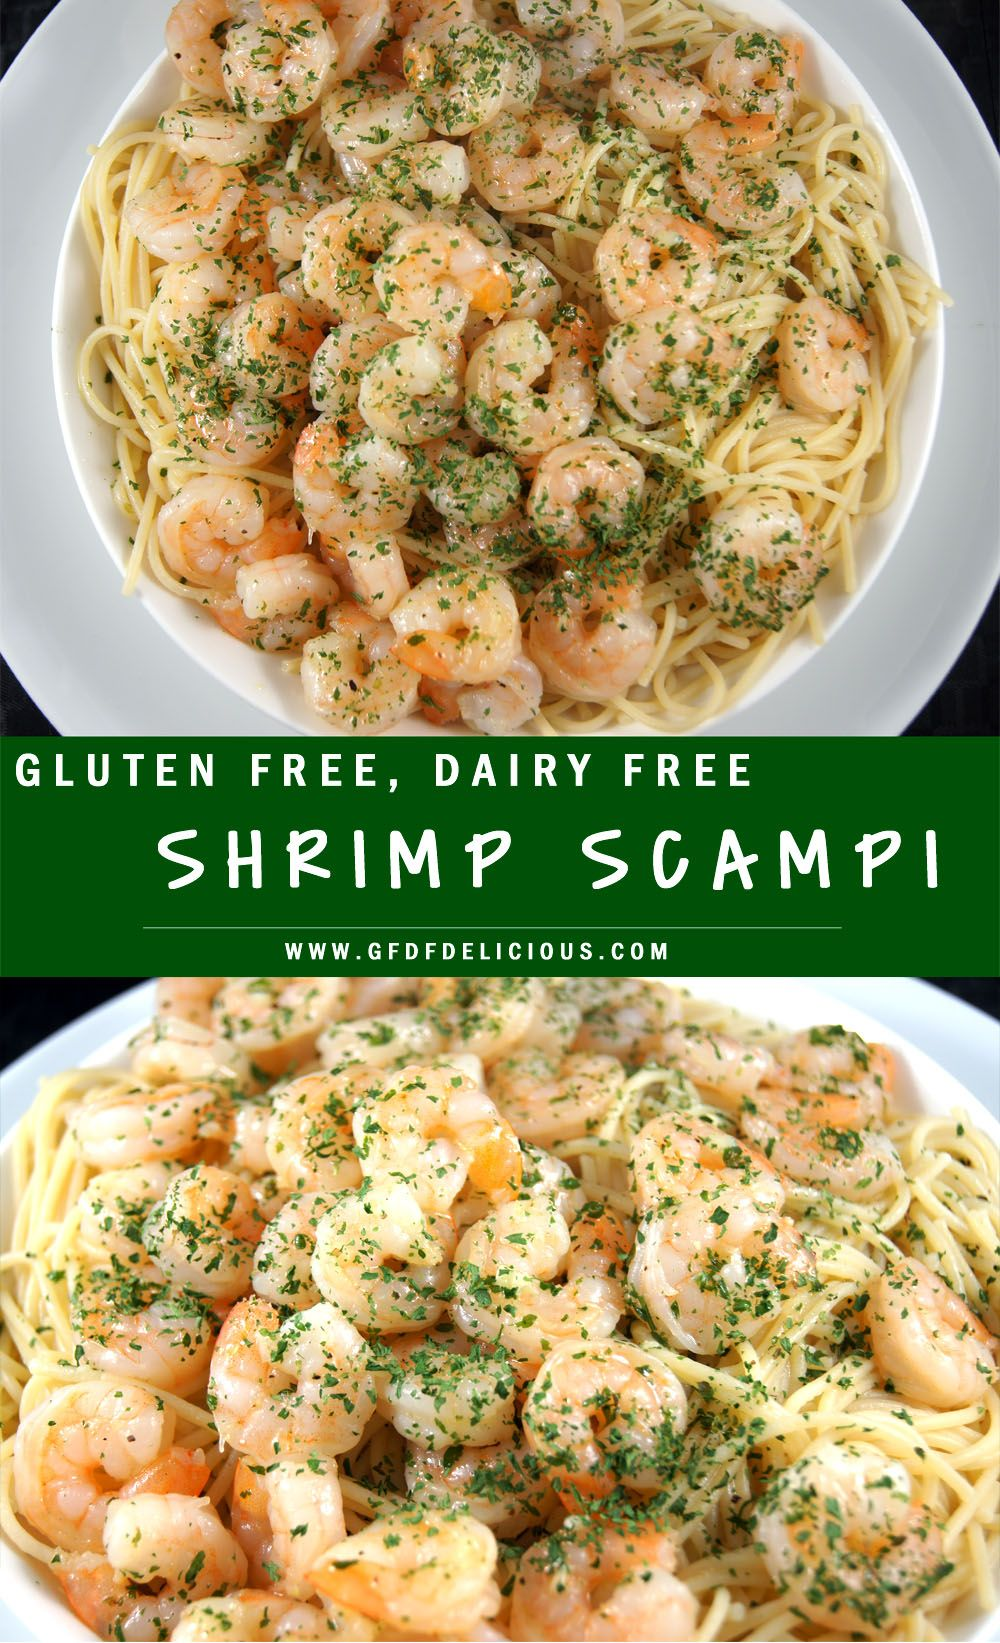 GF DF Shrimp Scampi